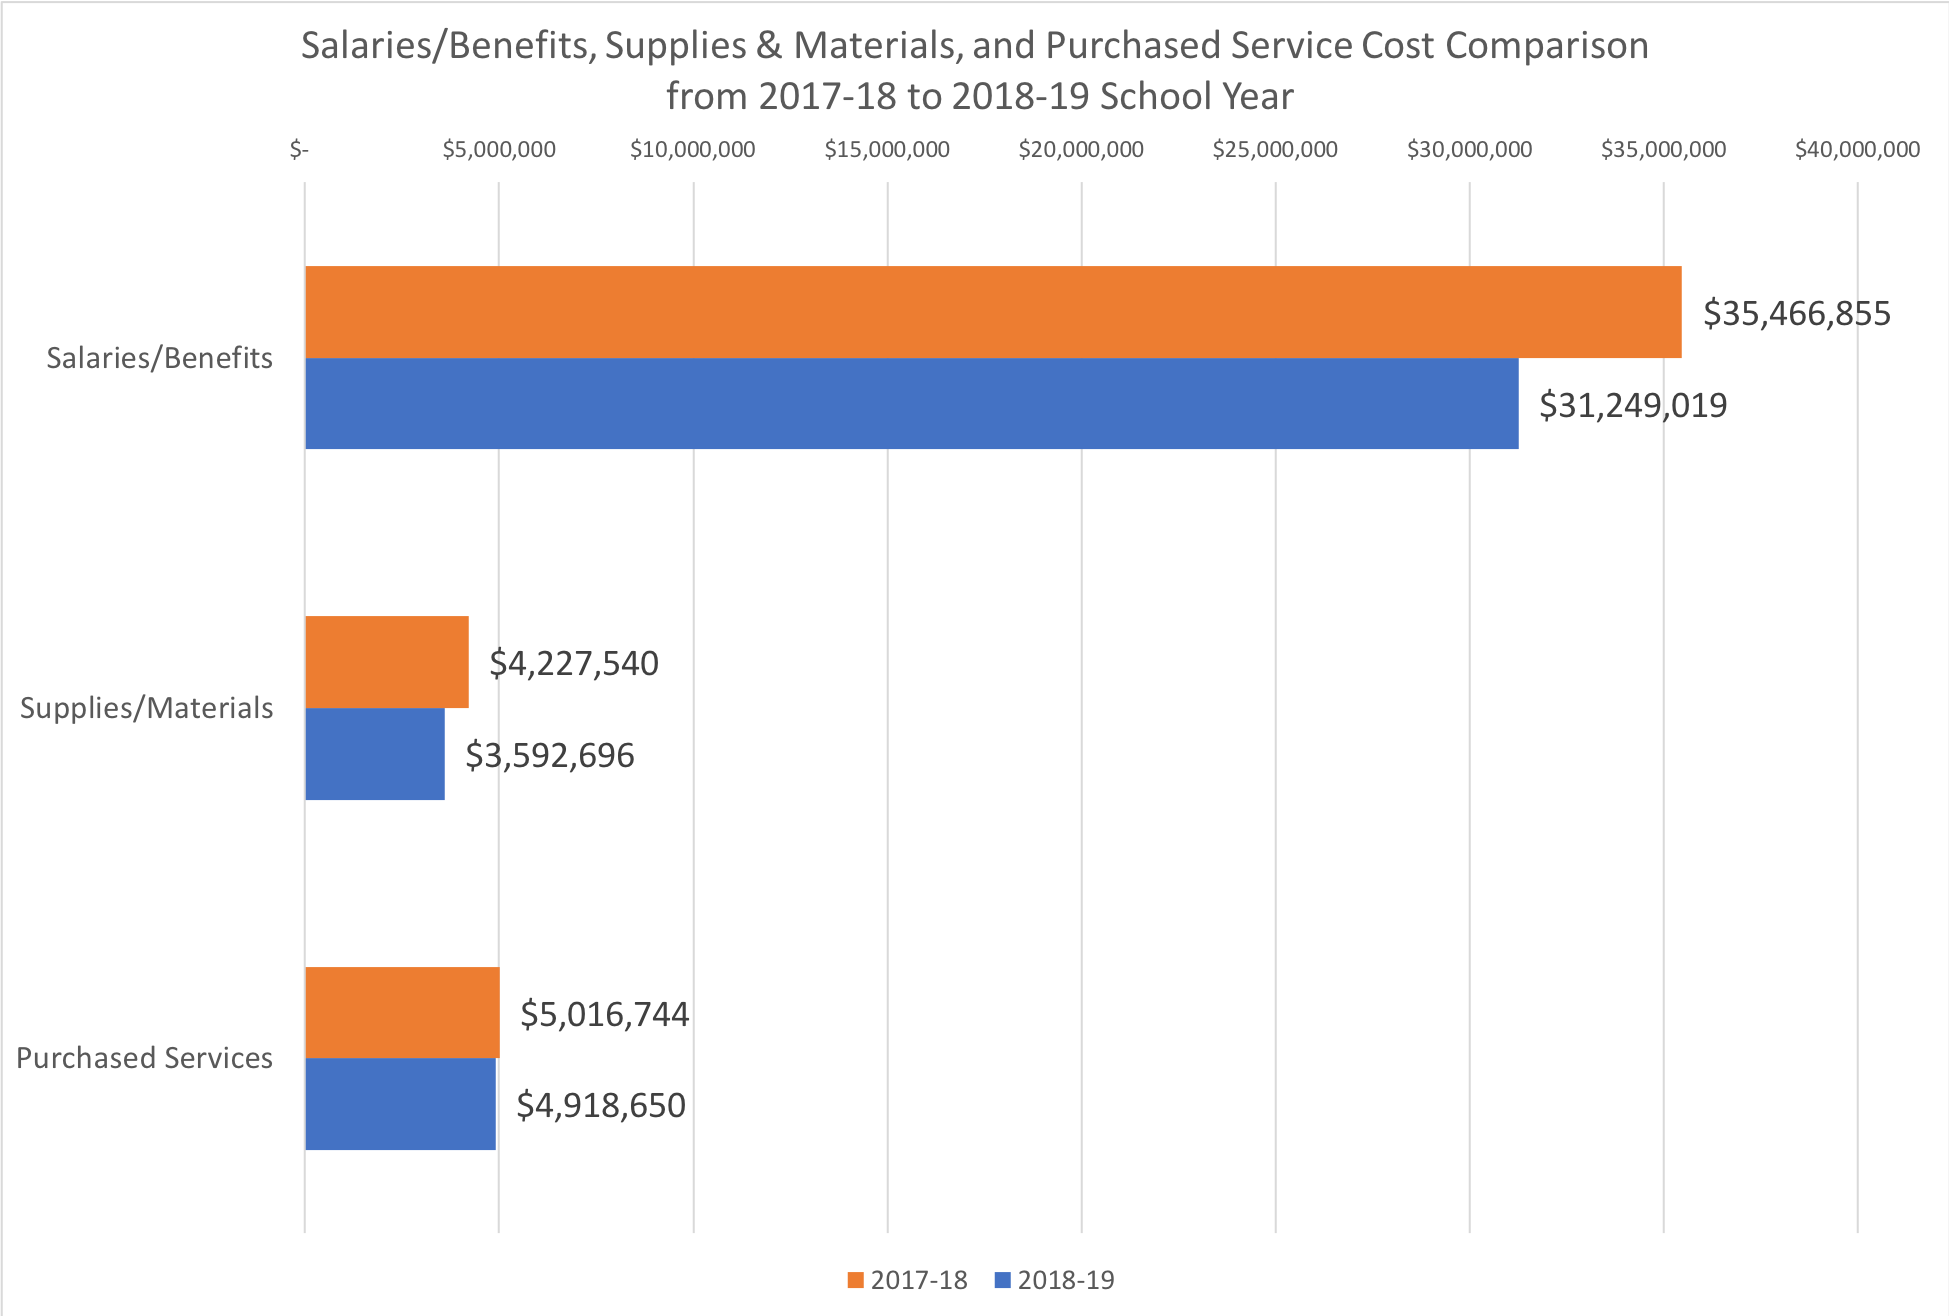 Comparison of major expenses from 2017-18 to 2018-19 with salary and benefit increase by $4.2 million to $35.4 million, and supplies/materials increasing by $600,000 and purchased services growing by less than $100,000